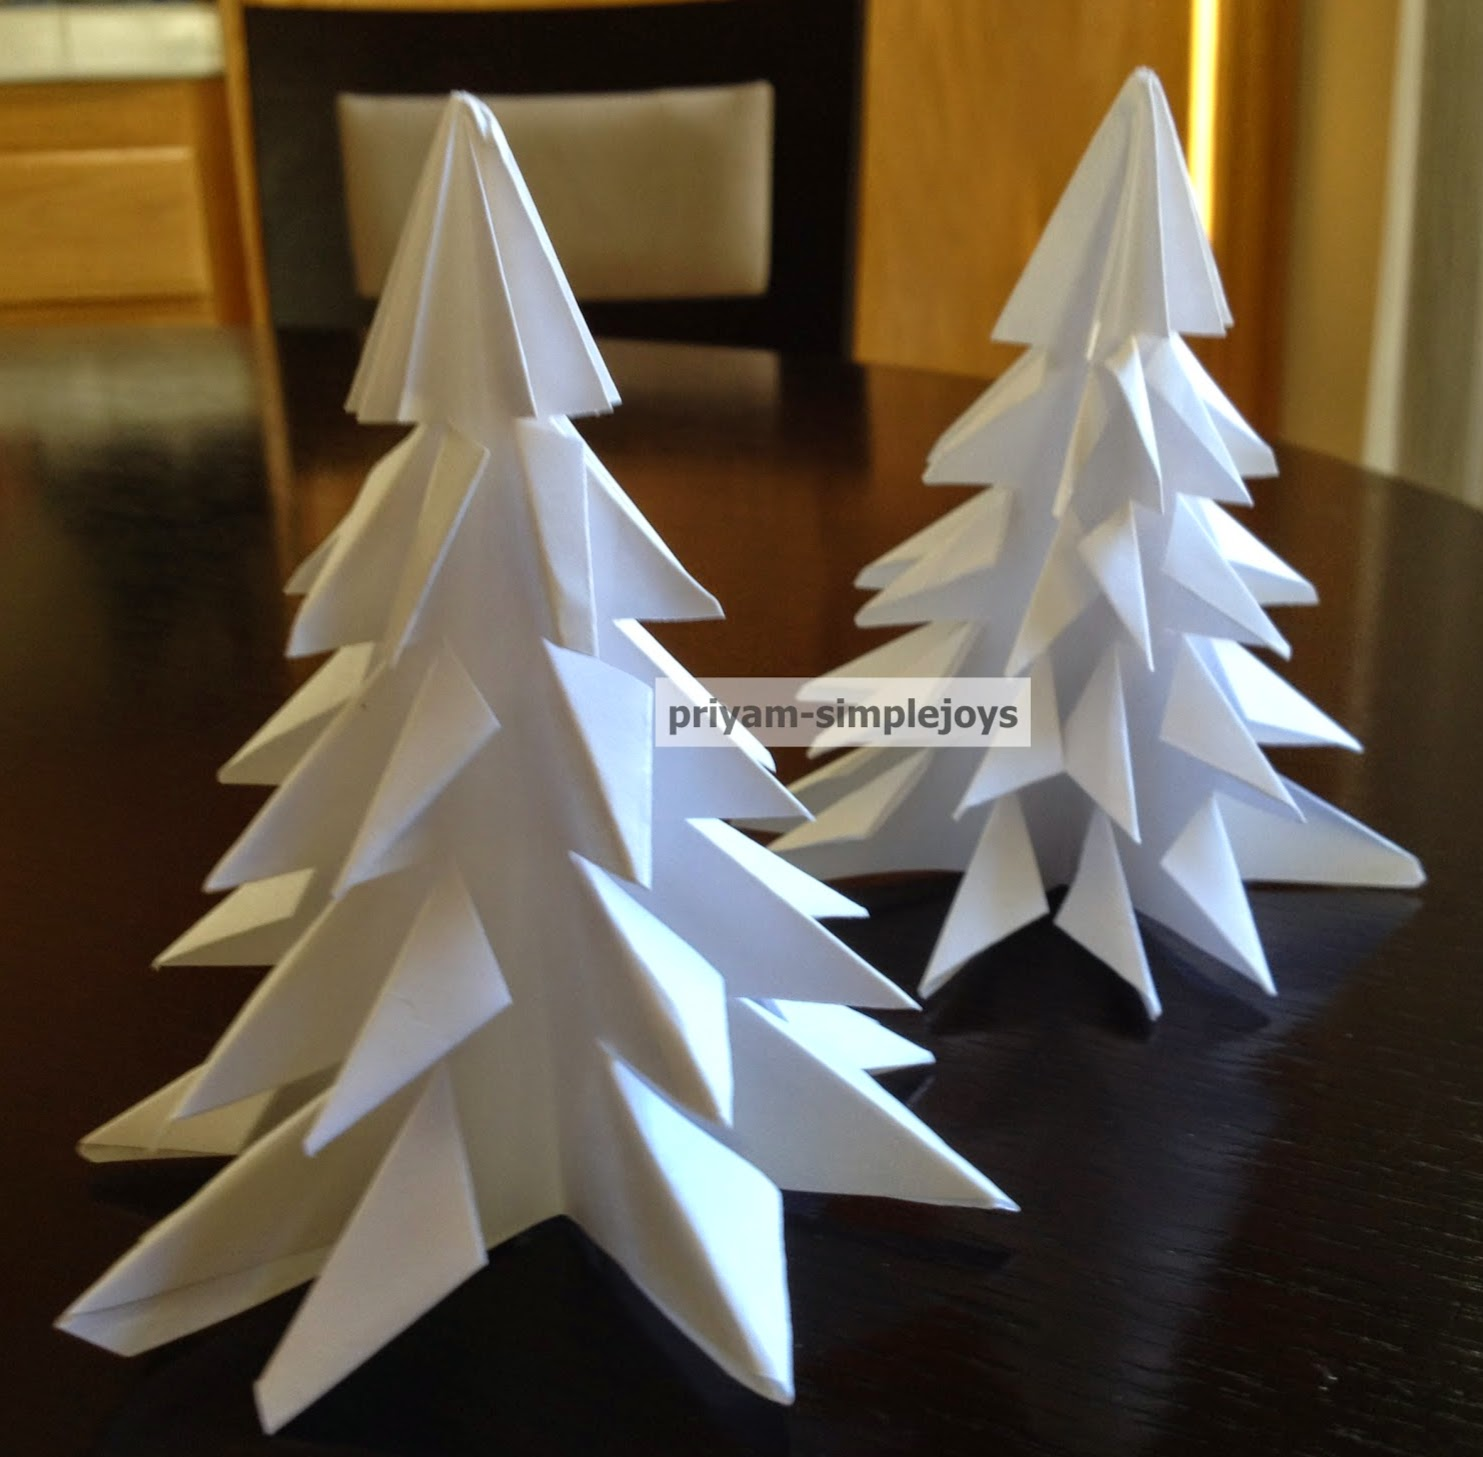 Delightful How To Make Things Out Of Paper Part - 14: I Have Been Out Of Blogging For Some Time. Just Got Busy With Things, But  Was Itching To Get Back And Do Something. So Started Today With A Simple  Paper ...